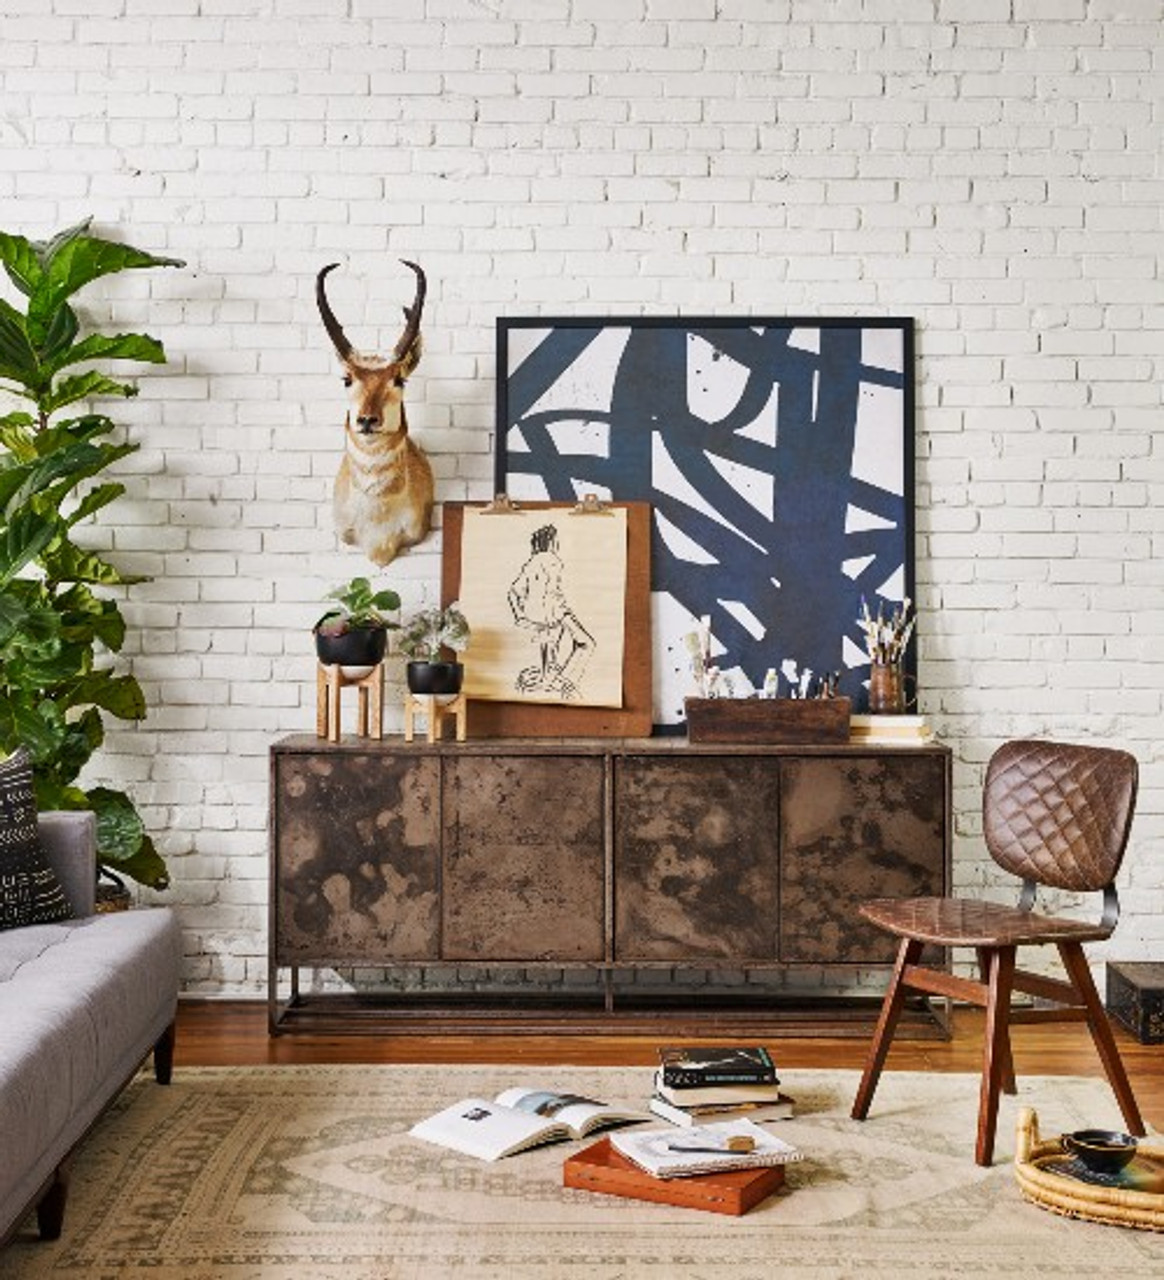 9 Eclectic Home Decor Style Tips